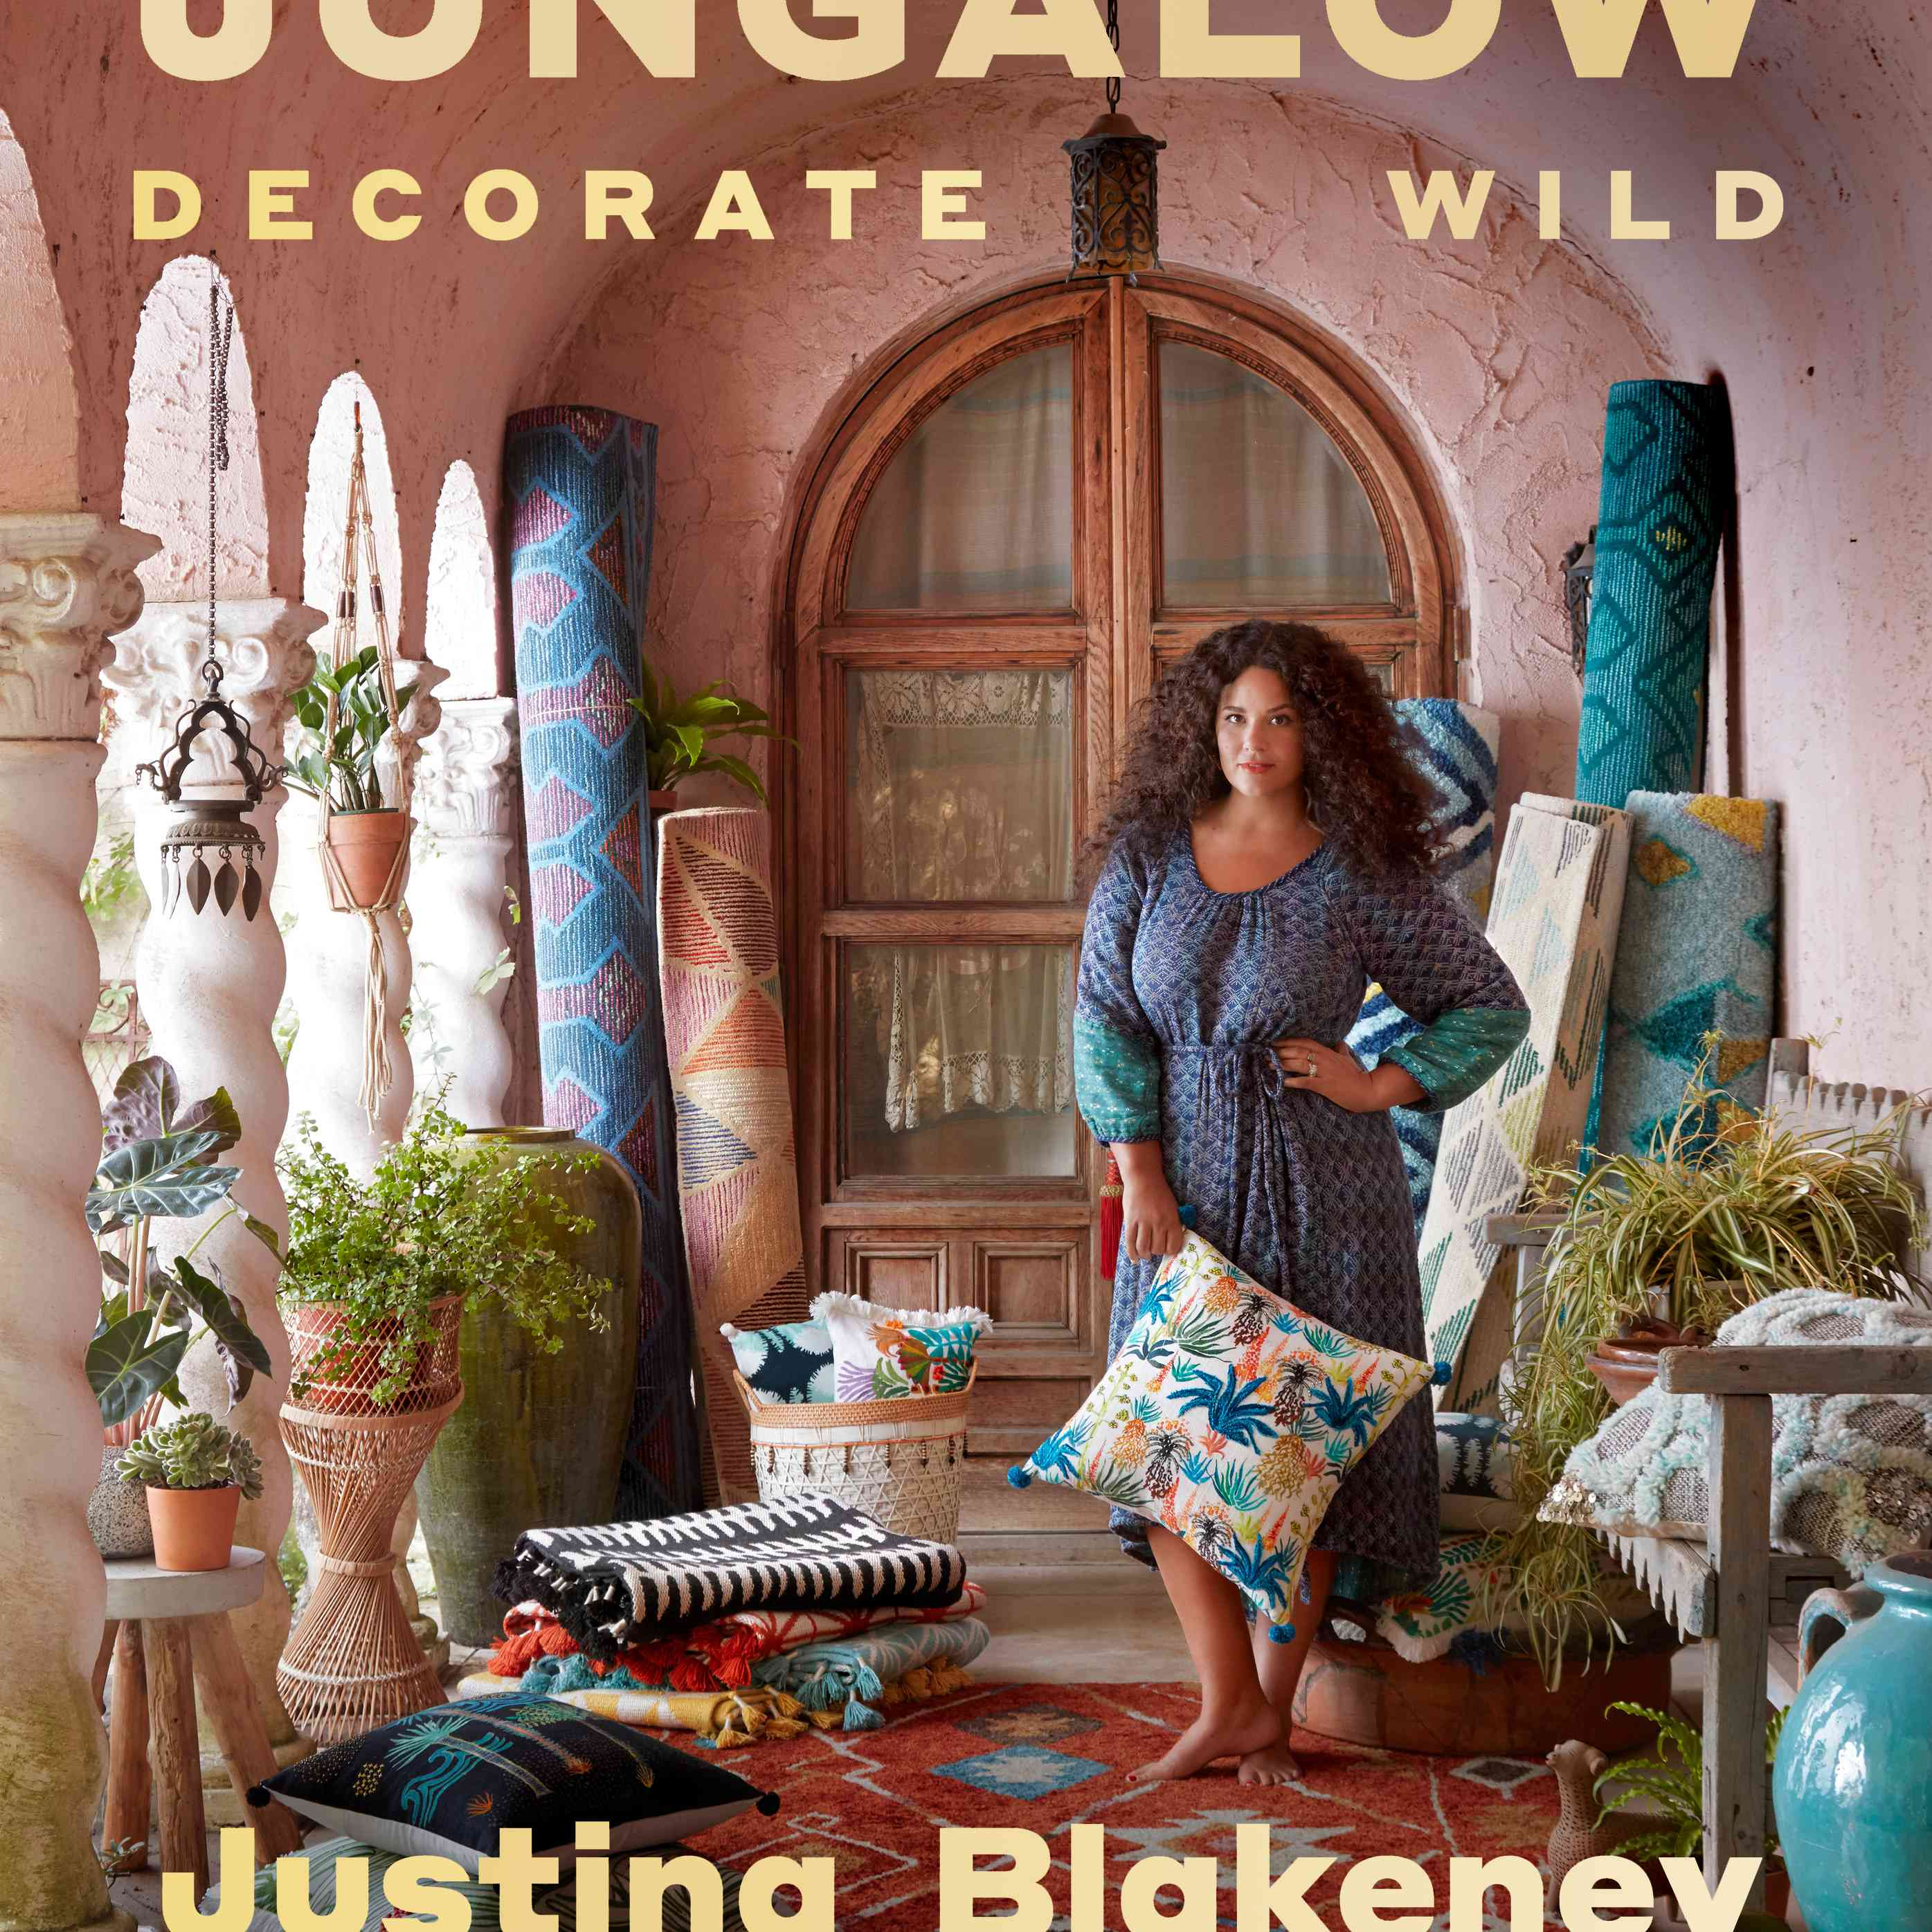 Jungalow Decorate Wild book cover with Justina Blakeney